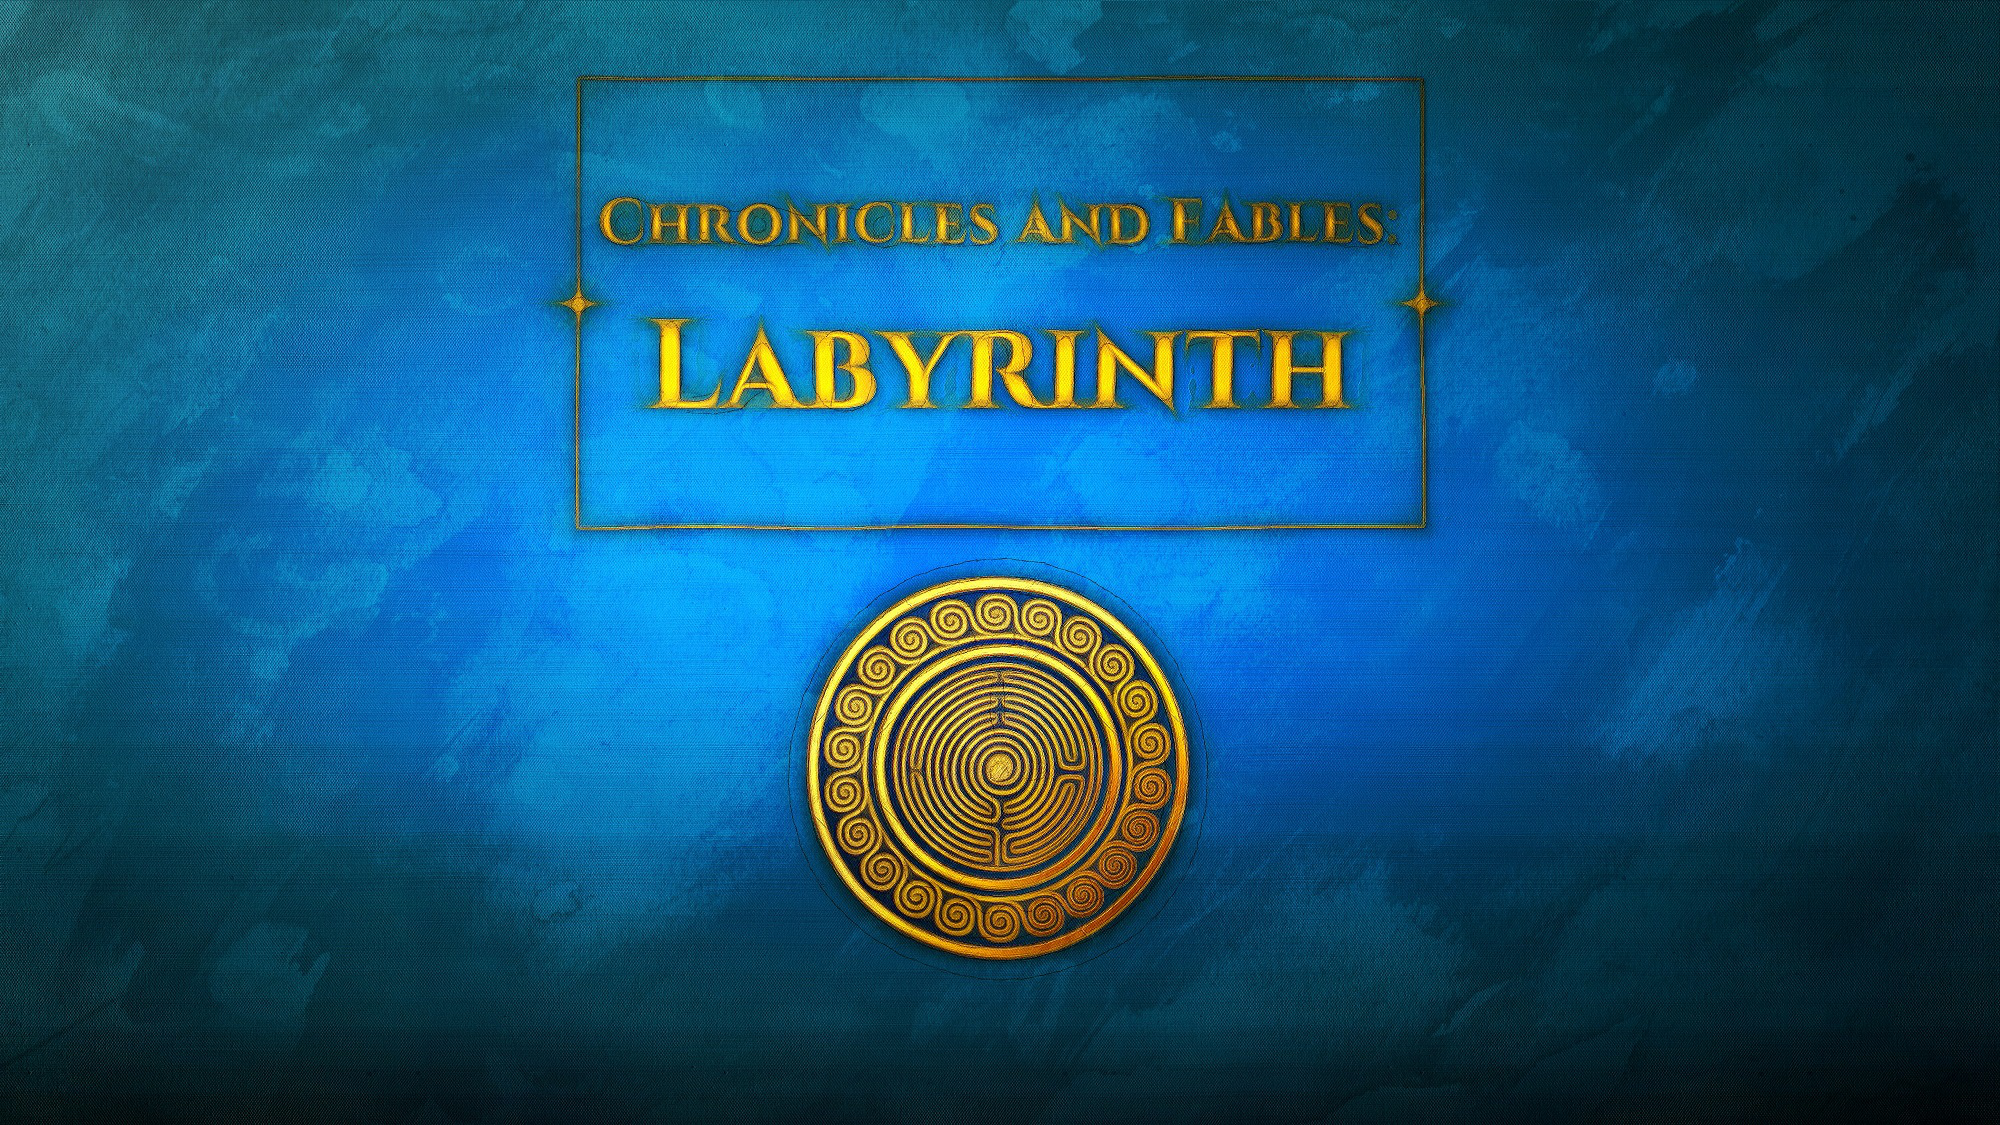 Chronicles and Fables: Labyrinth